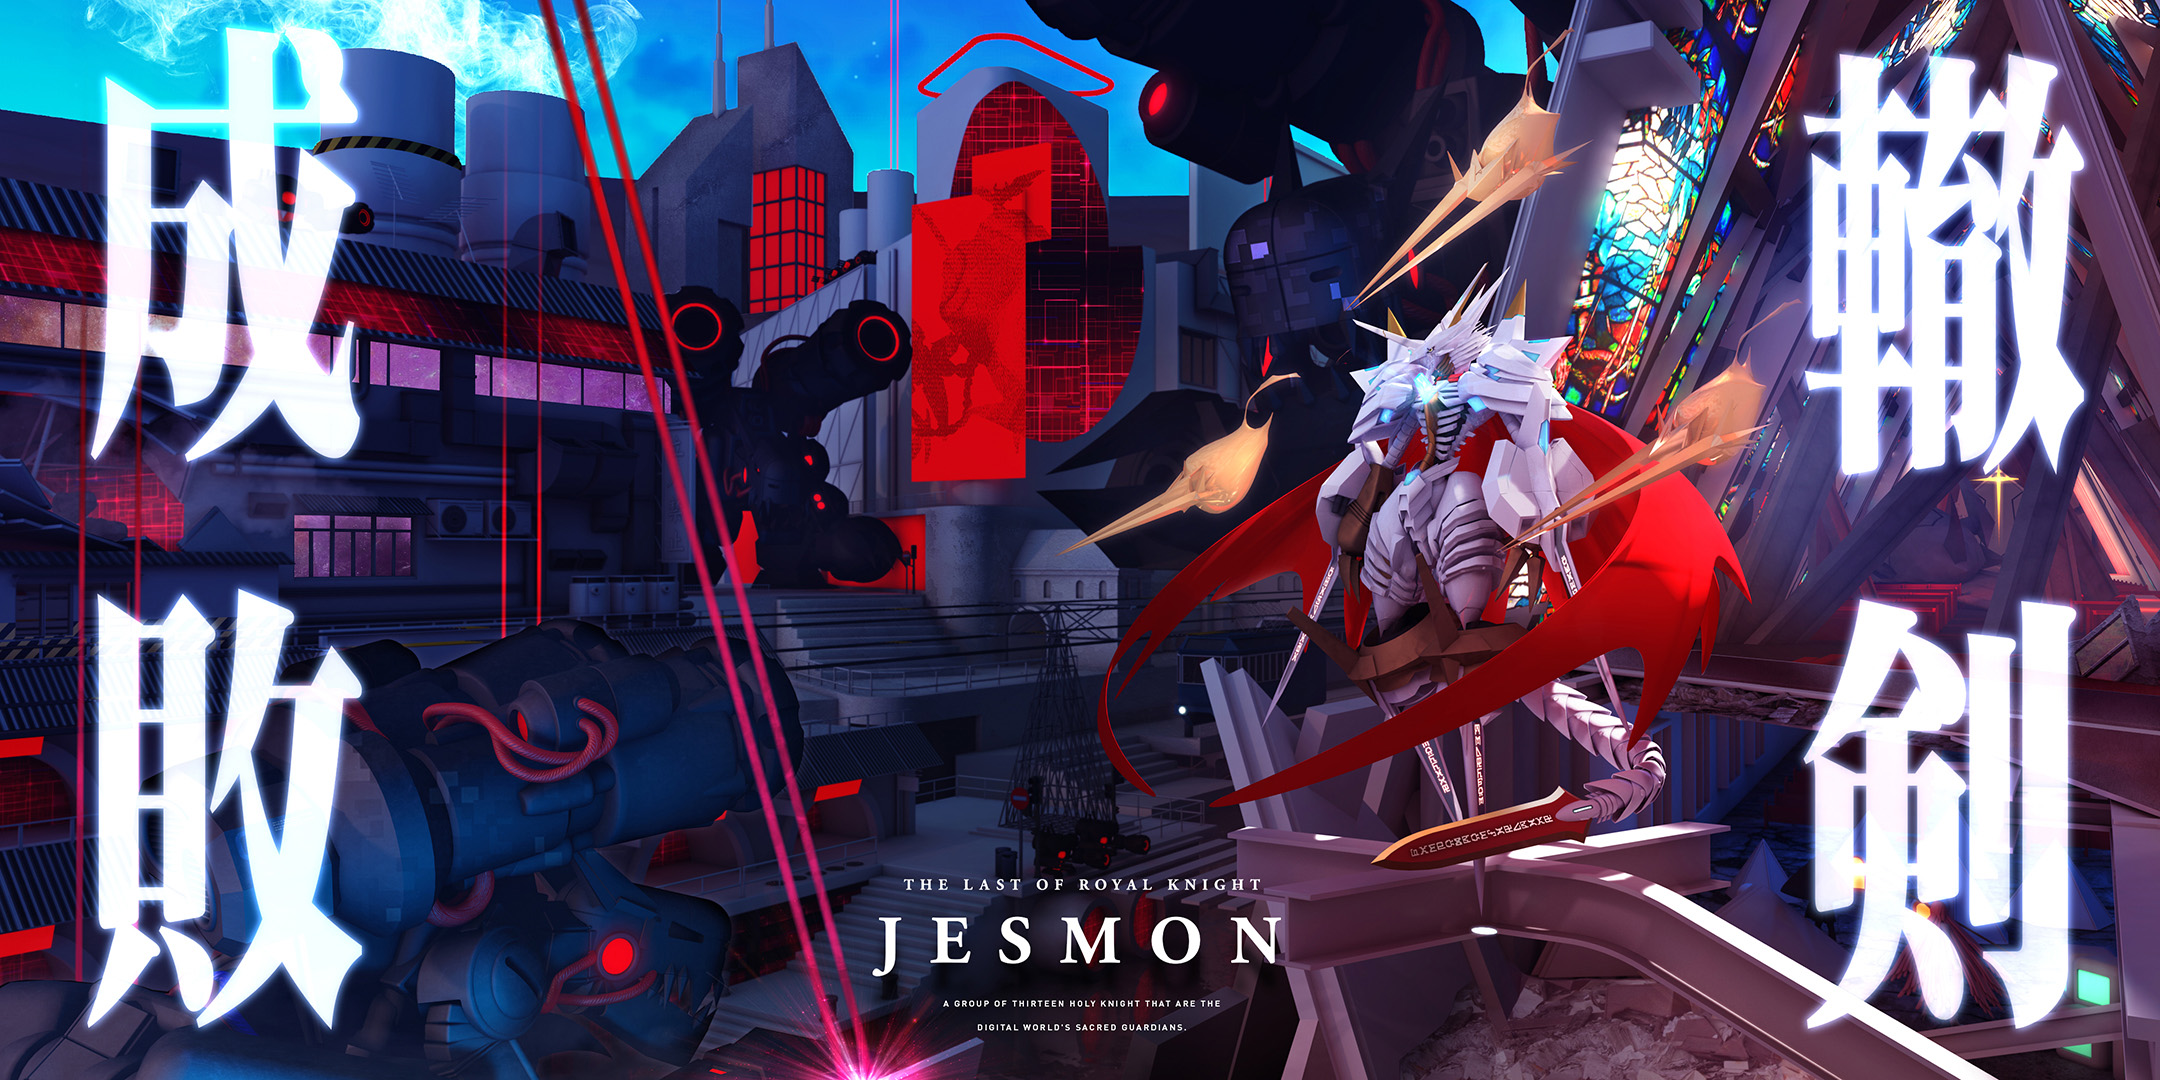 The Royal Knight Jesmon Digimon By Axelxeroblue On Deviantart The human body wasn't meant to jerk to the side so quickly. the royal knight jesmon digimon by